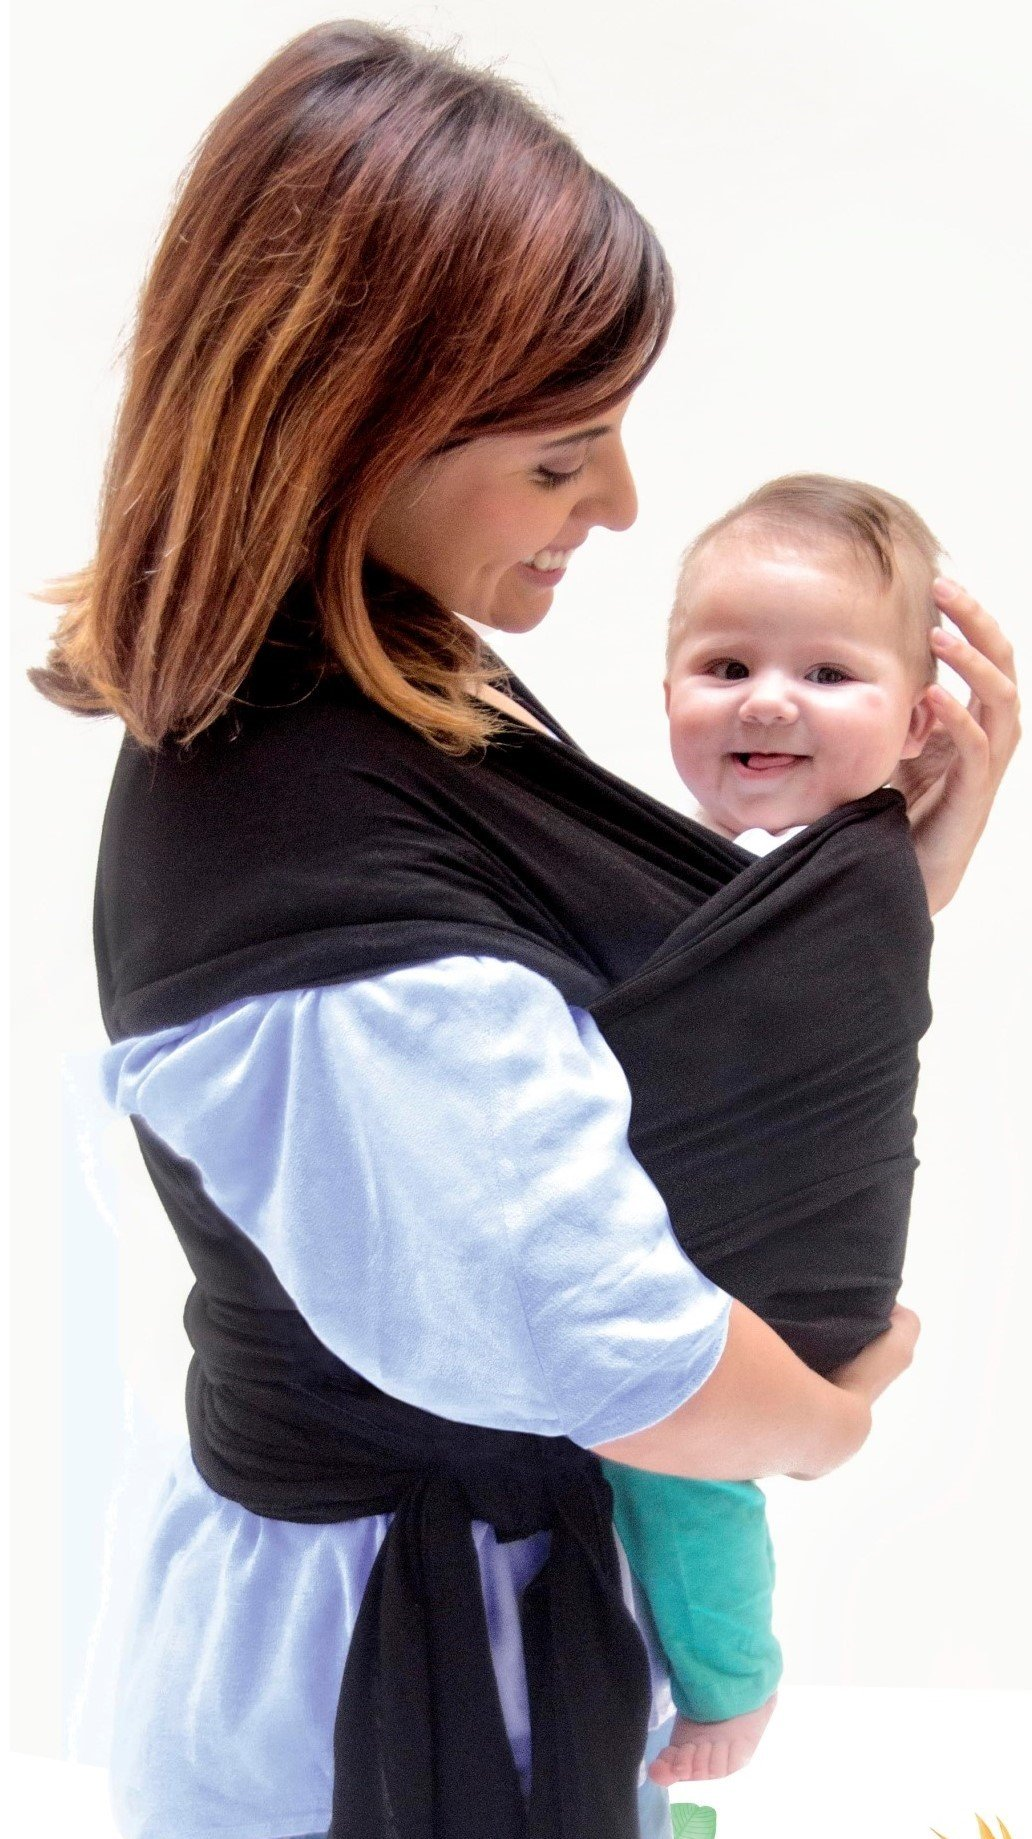 Baby Carrier Wrap Sling Swaddles for Infant and Newborn in Peruvian Cotton - Black with Large